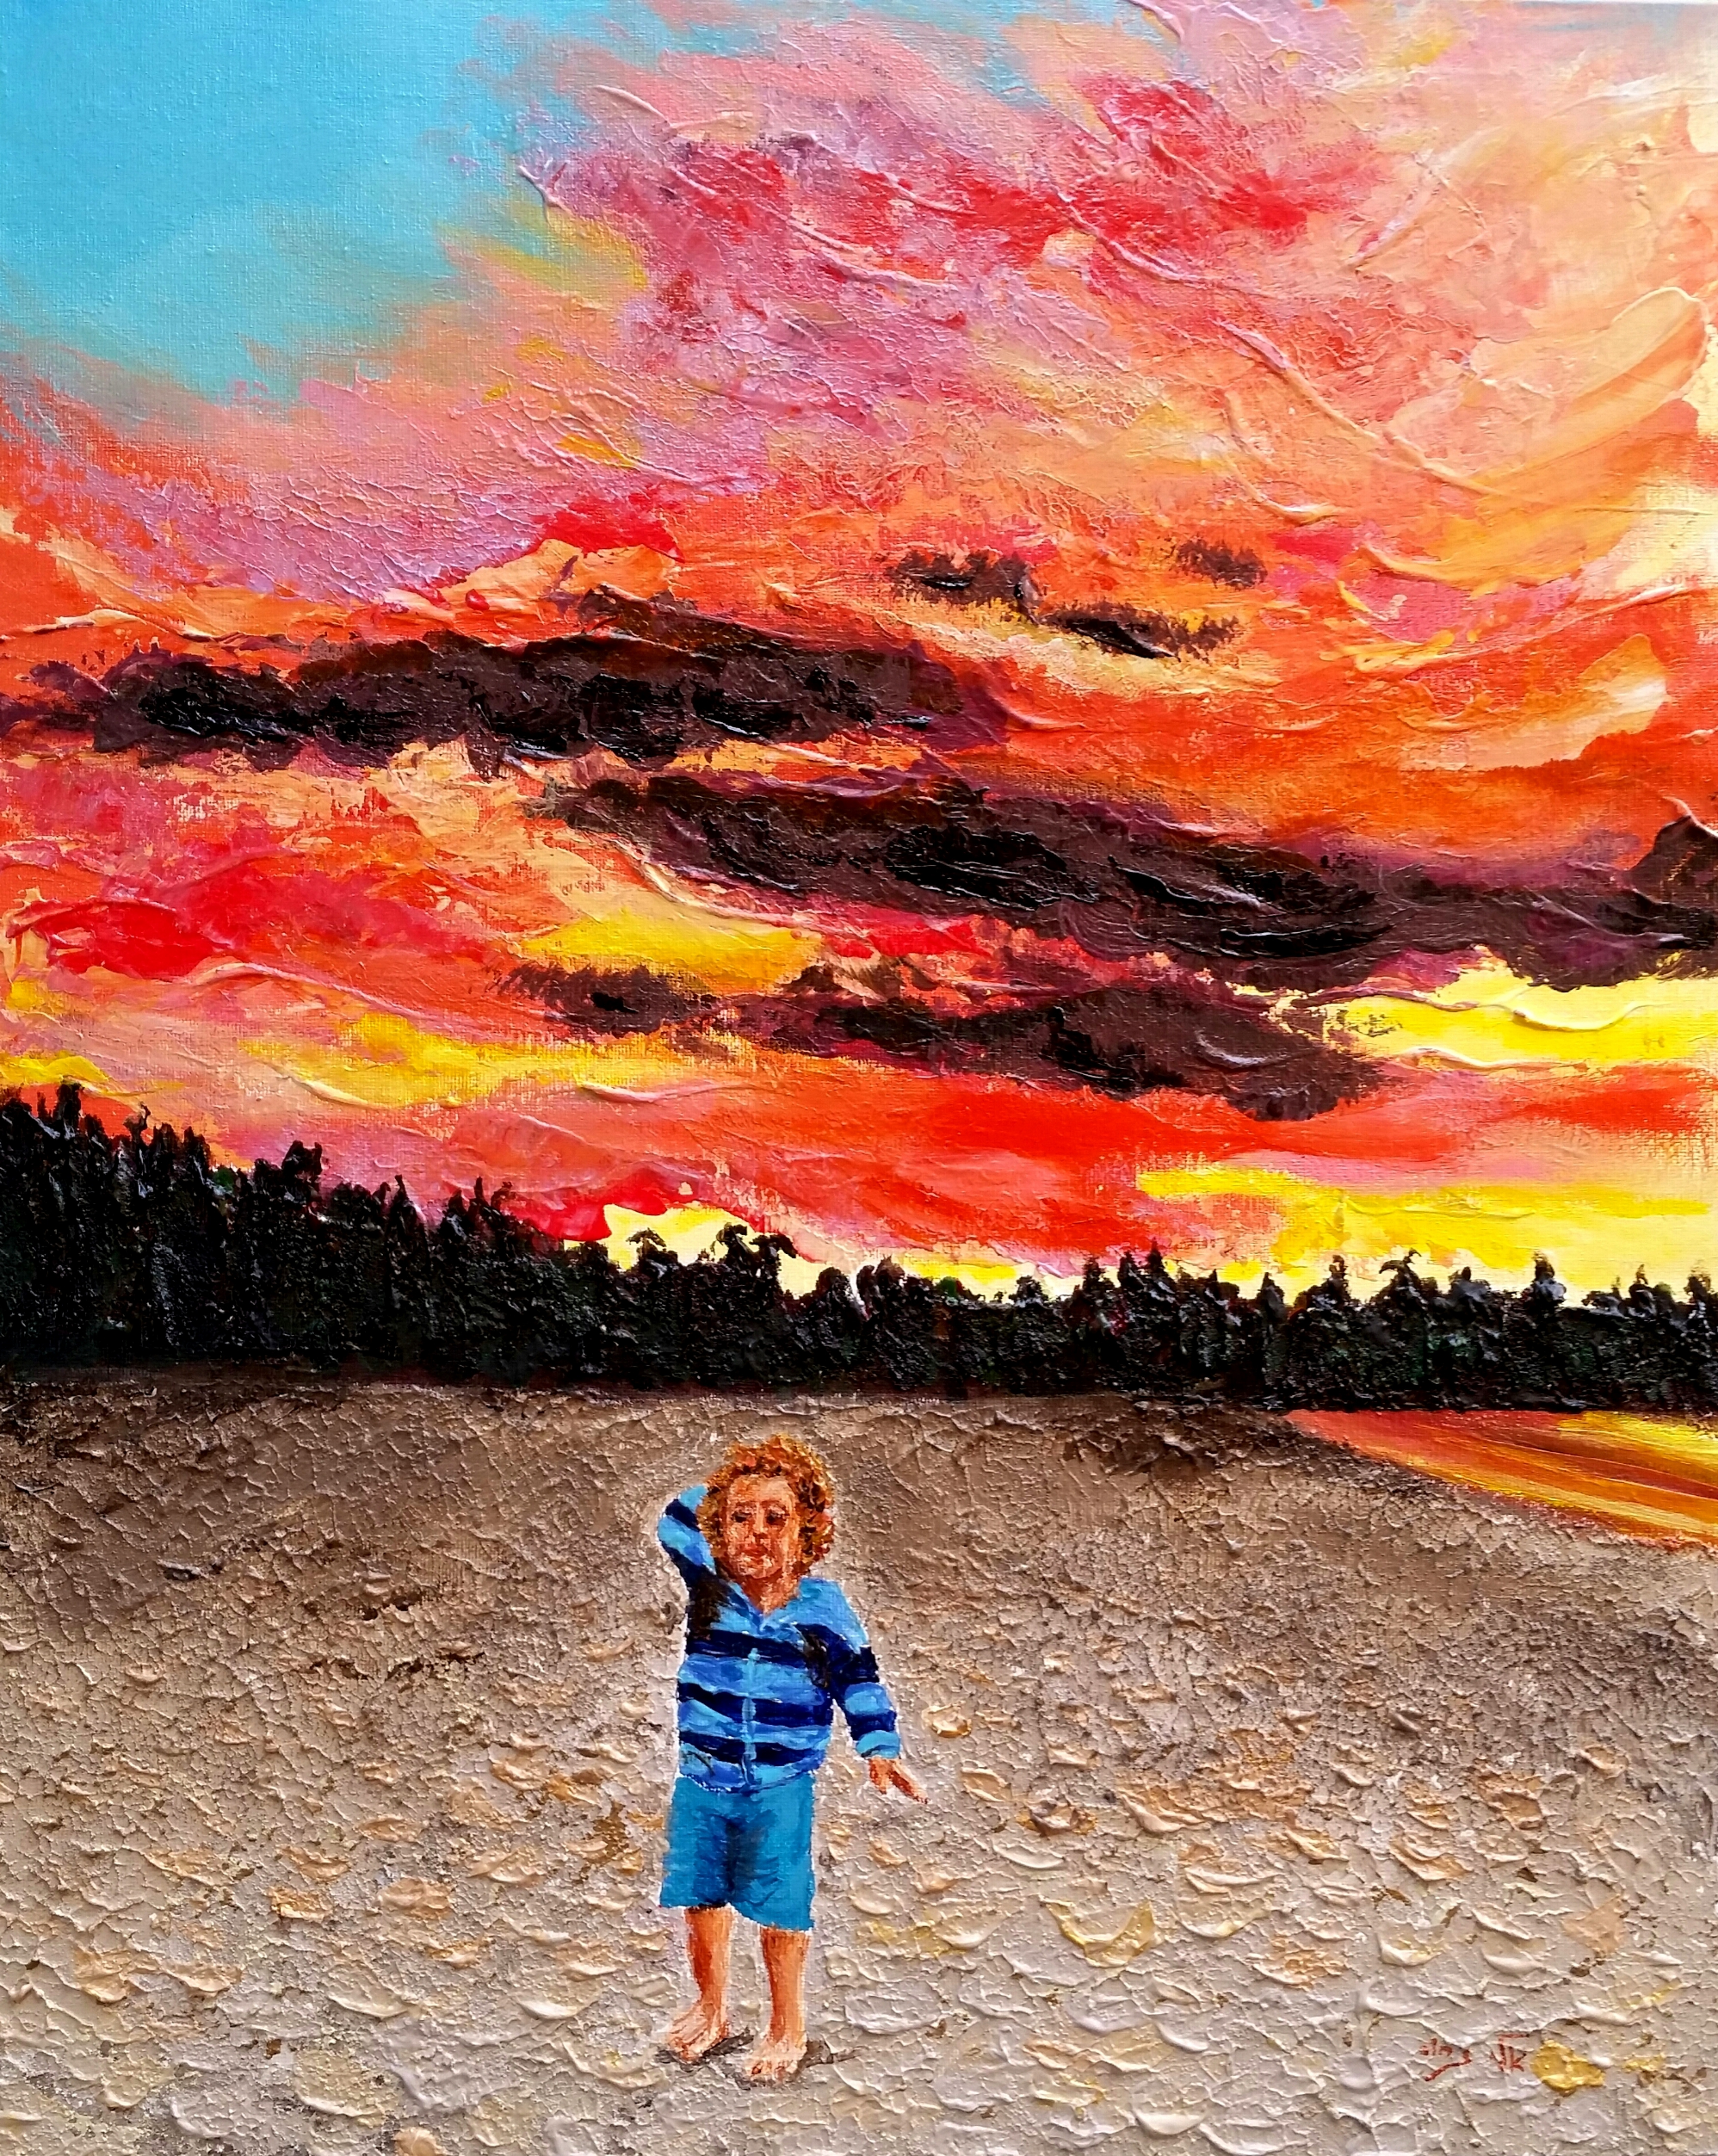 clouds and colors blend at sunset acrylic painting by eli gross absolutearts com absolutearts com